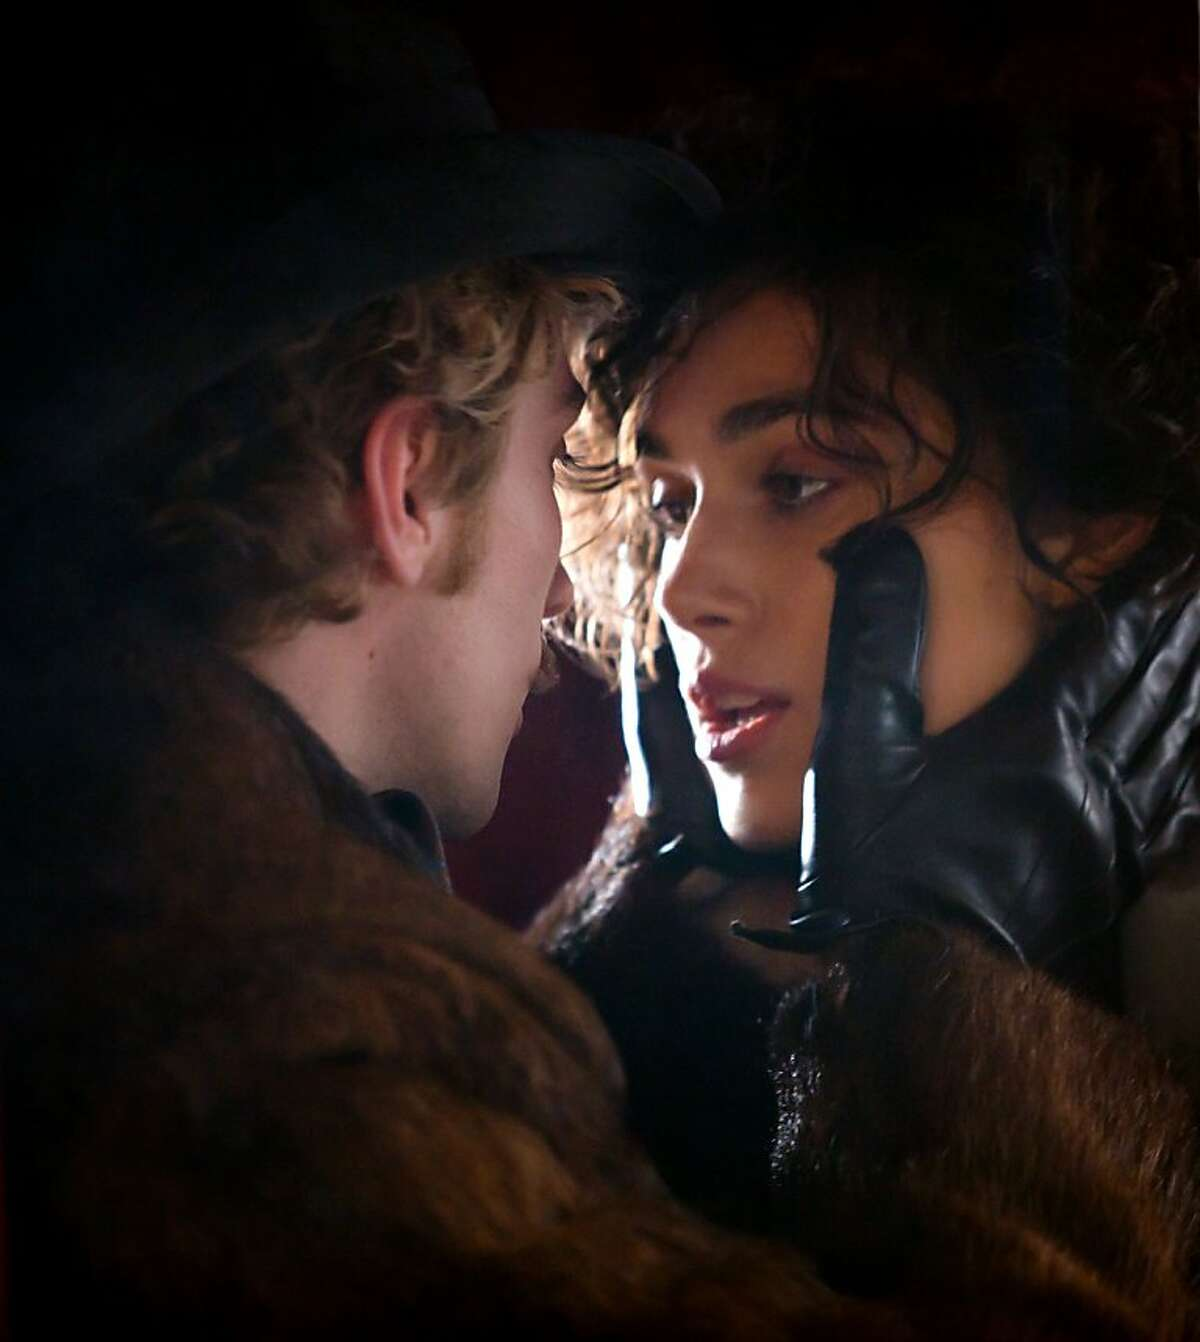 (l to r) Aaron Taylor-Johnson stars as Vronsky and Keira Knightley stars as Anna in director Joe Wright?•s bold, theatrical new vision of the epic story of love, Anna Karenina, a Focus Features release.